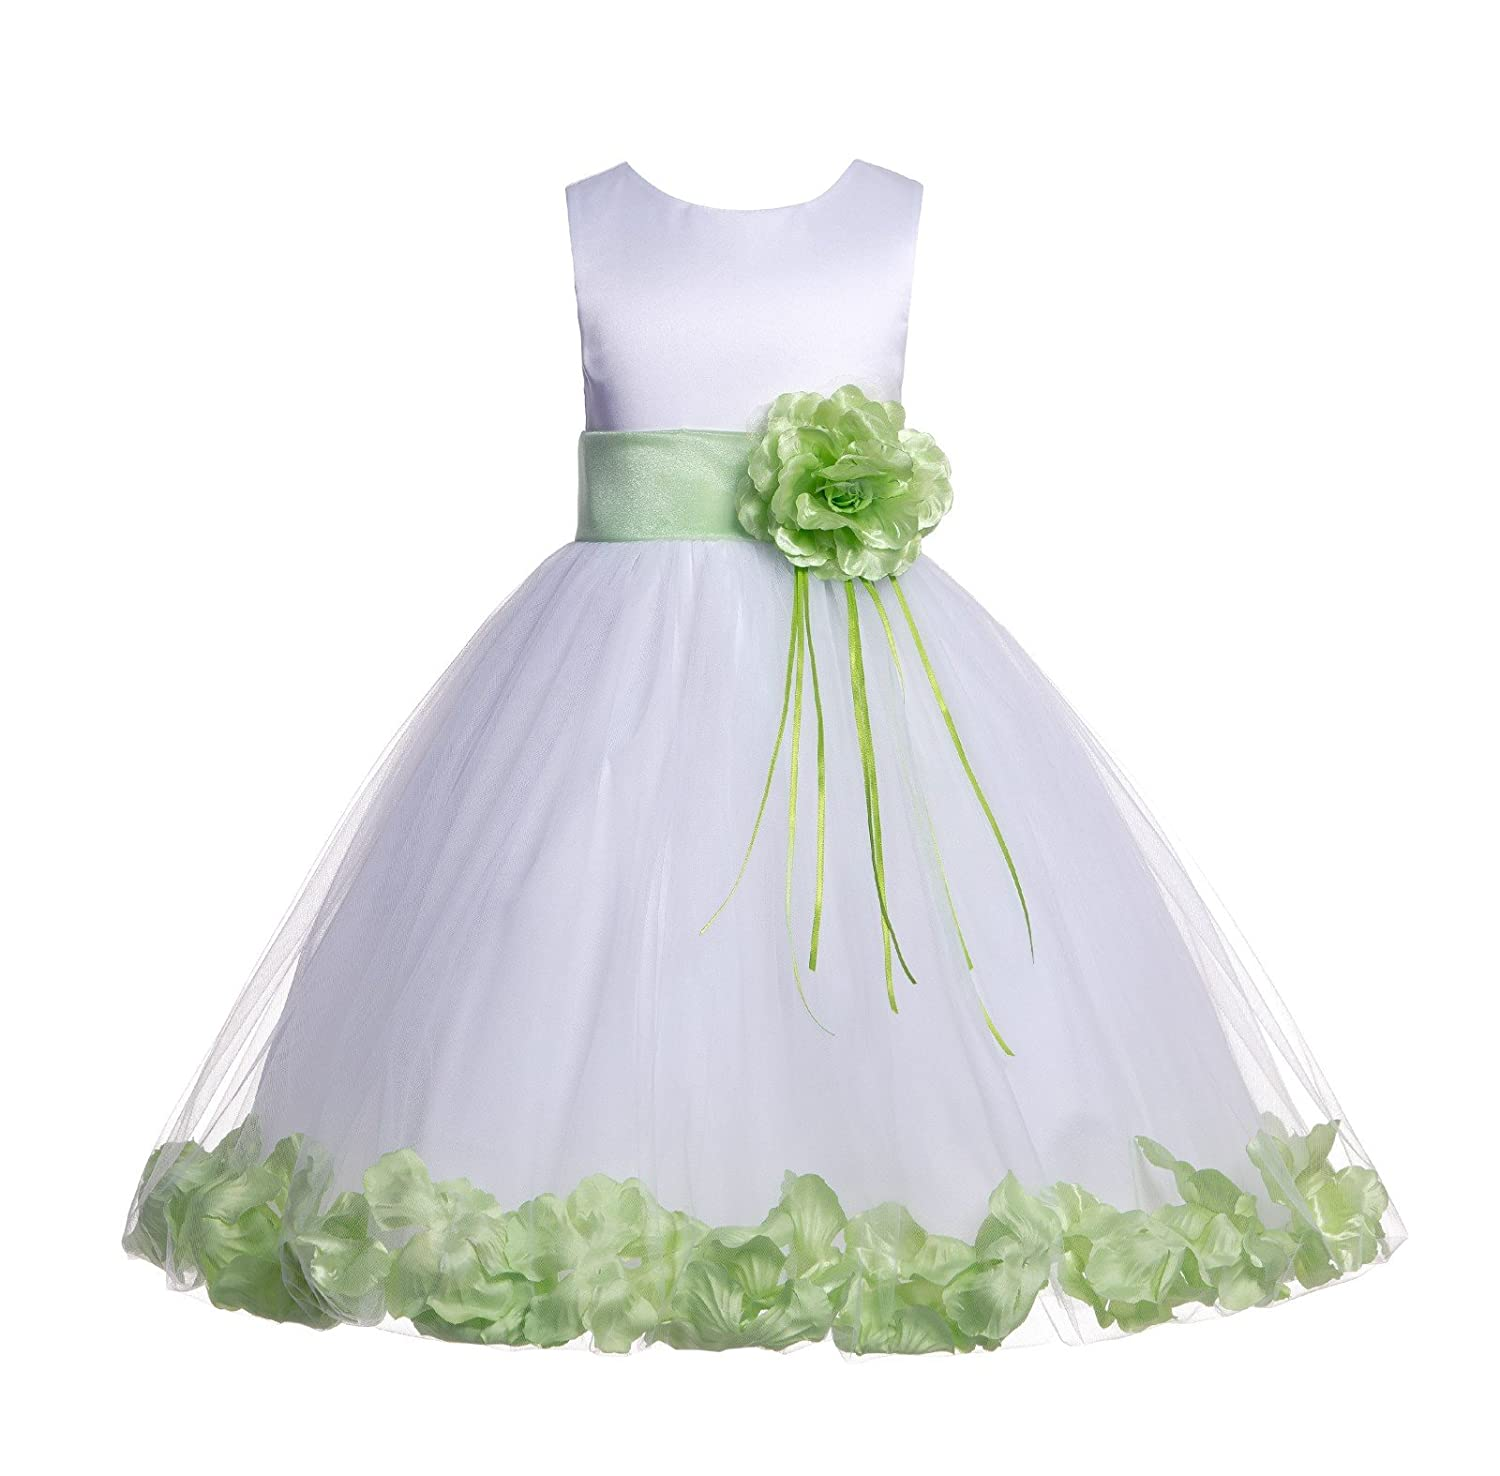 f69419a0eab White Flower Girl Dresses Amazon - Gomes Weine AG